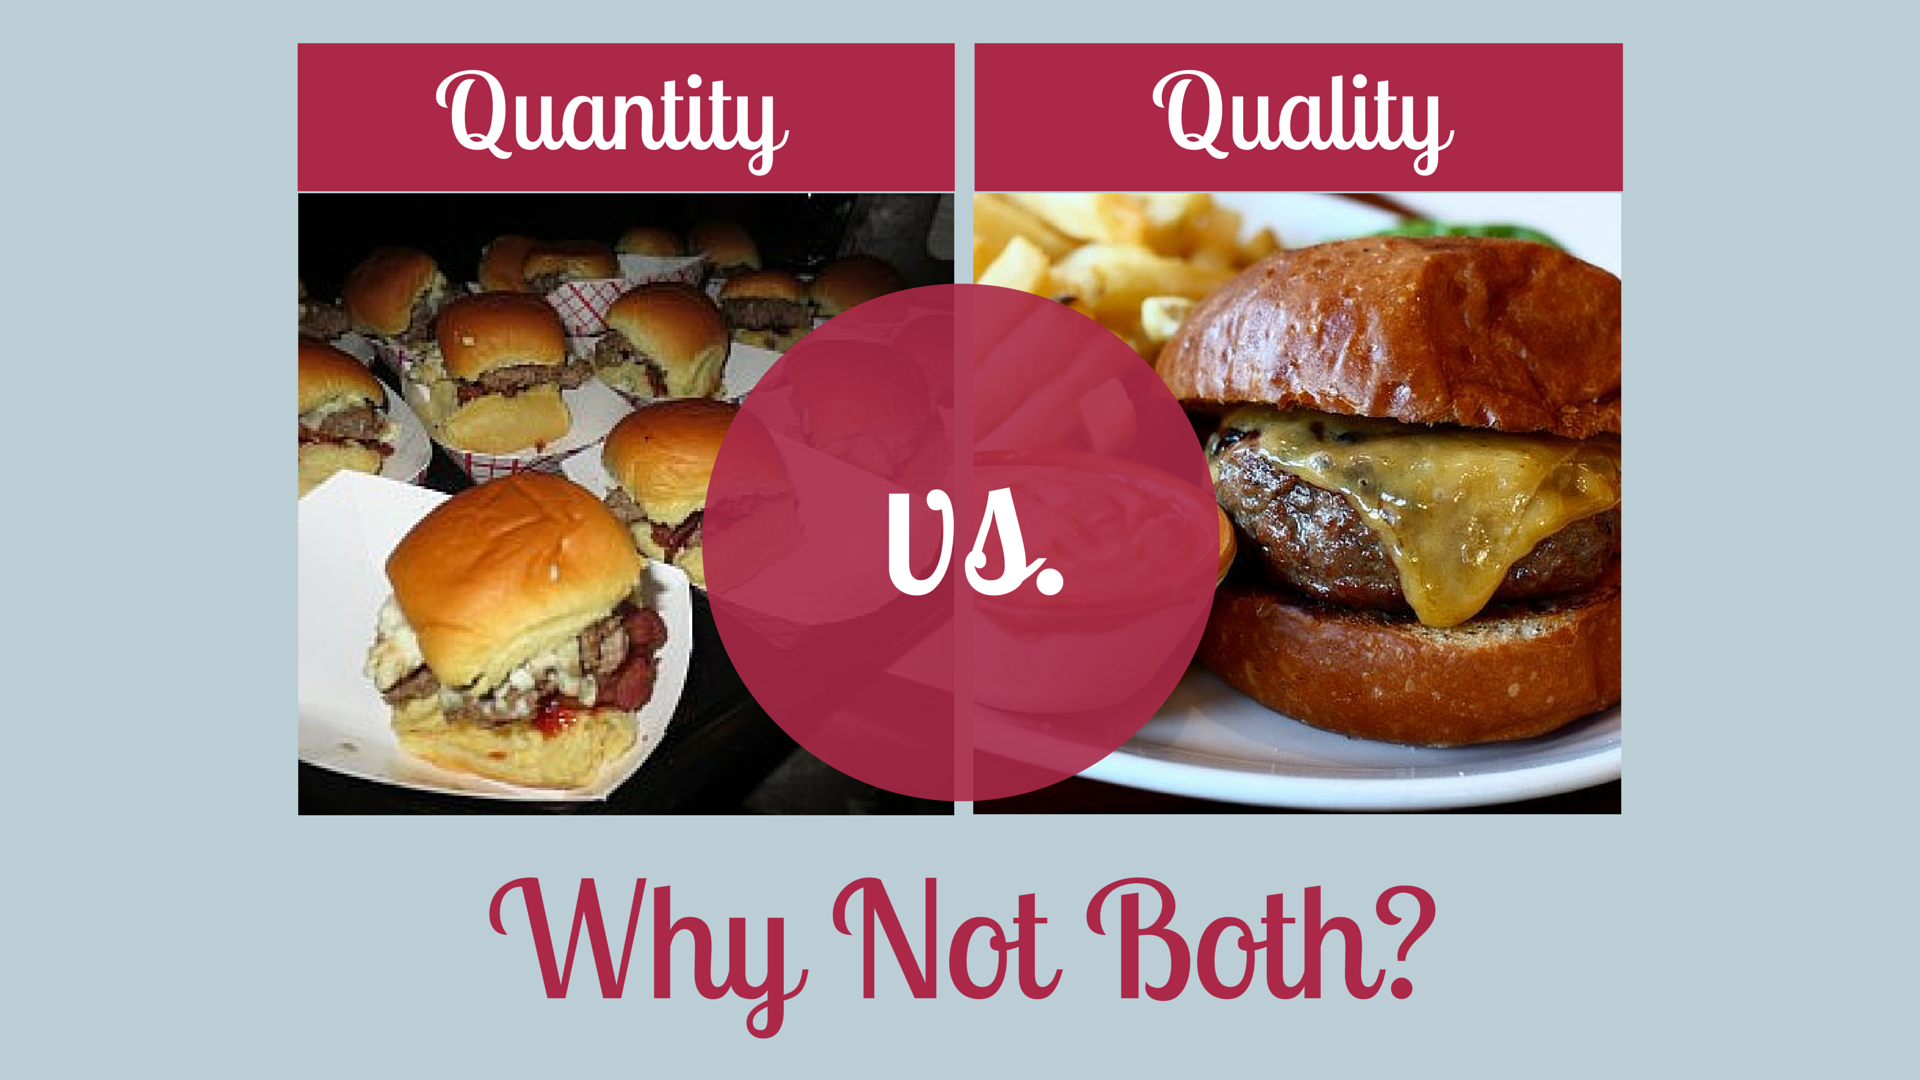 content_marketing_quality_vs_quantity_why_not_both